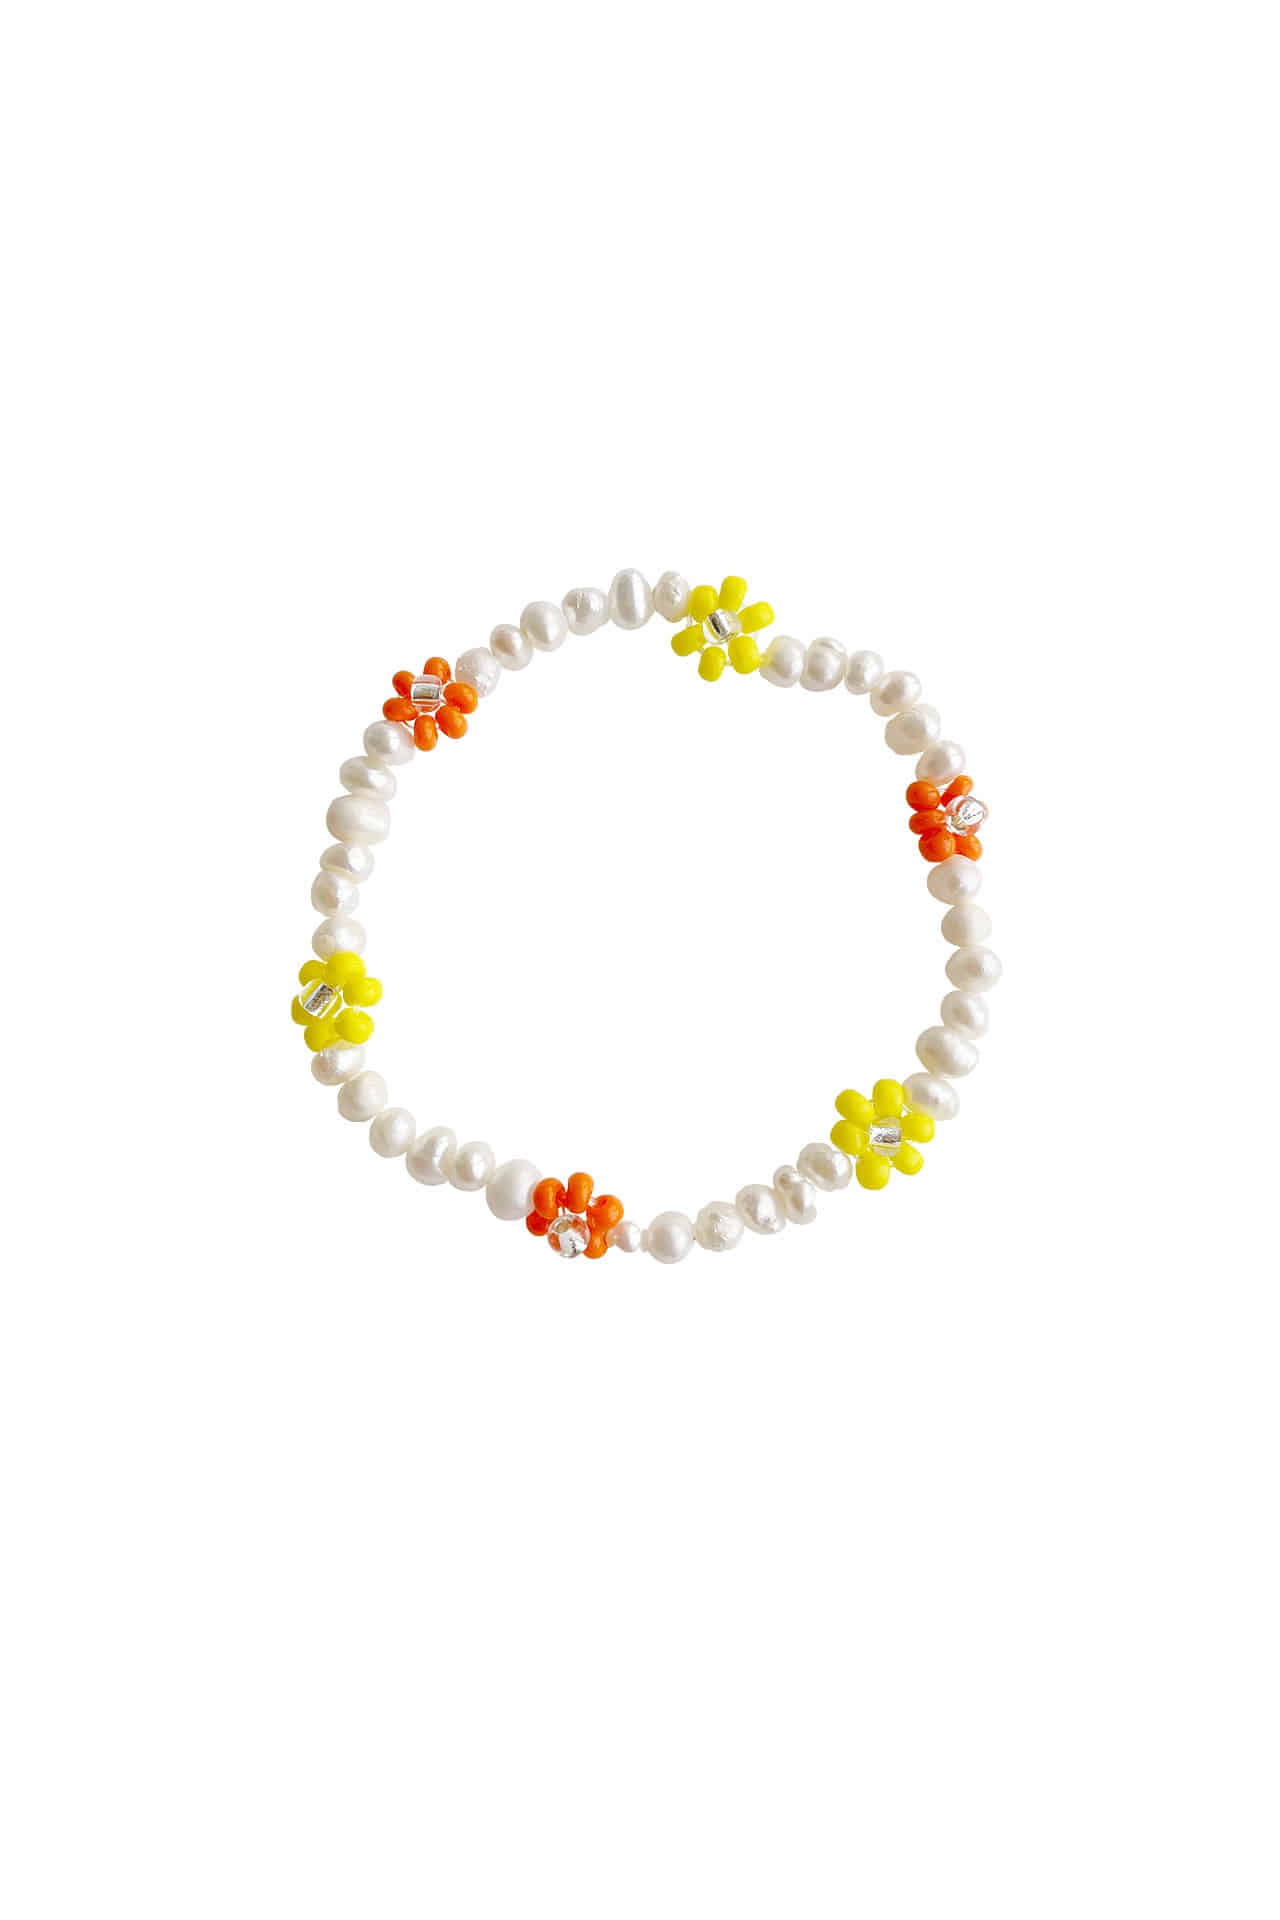 Butter Flower Bracelet | Citrus